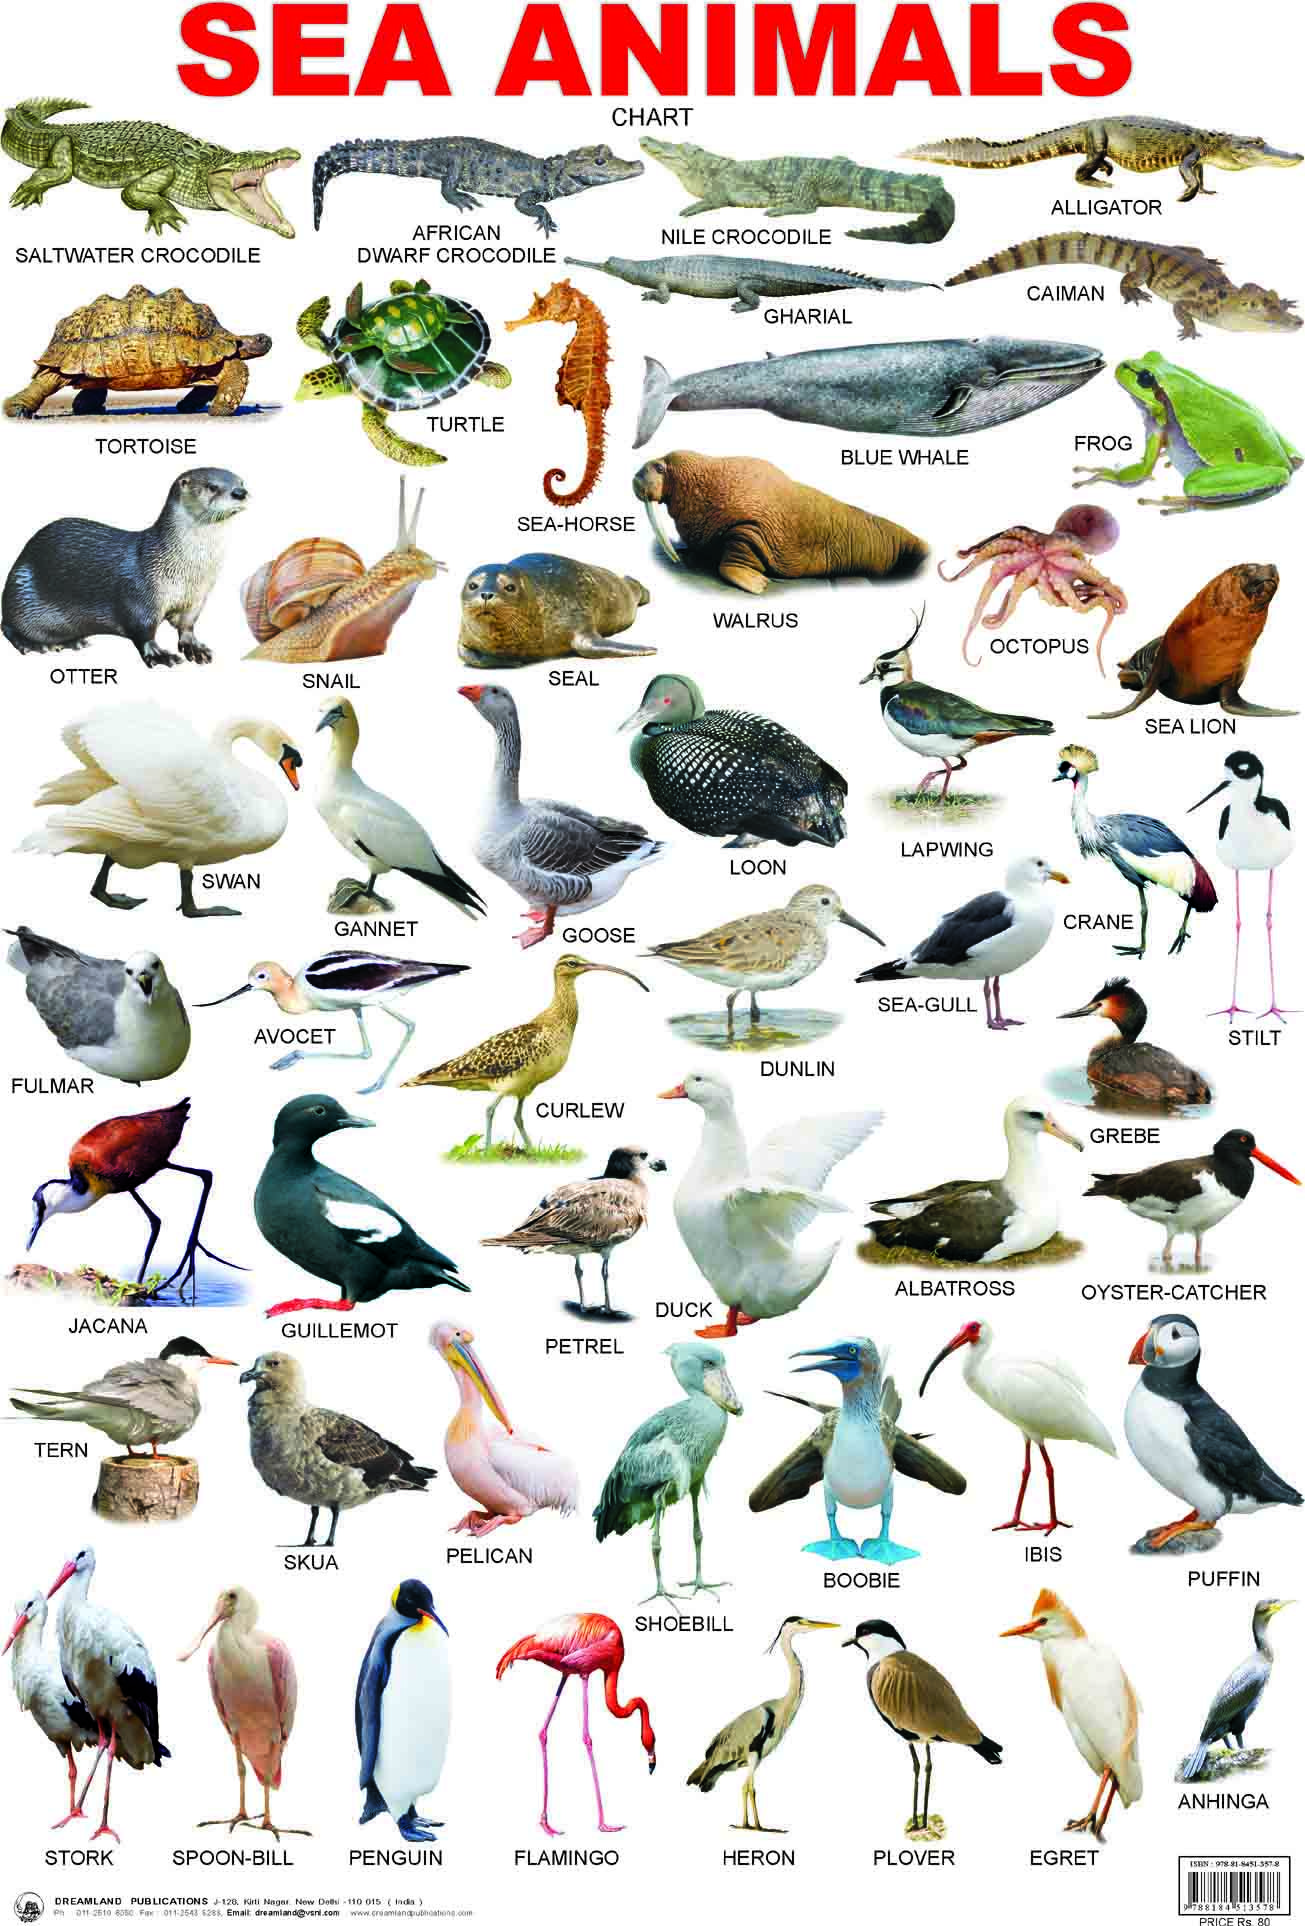 Hq Wallpapers Plus Provides Different Size Of Sea Animals With Names Wallpapers You Can Eas Learn English English Vocabulary